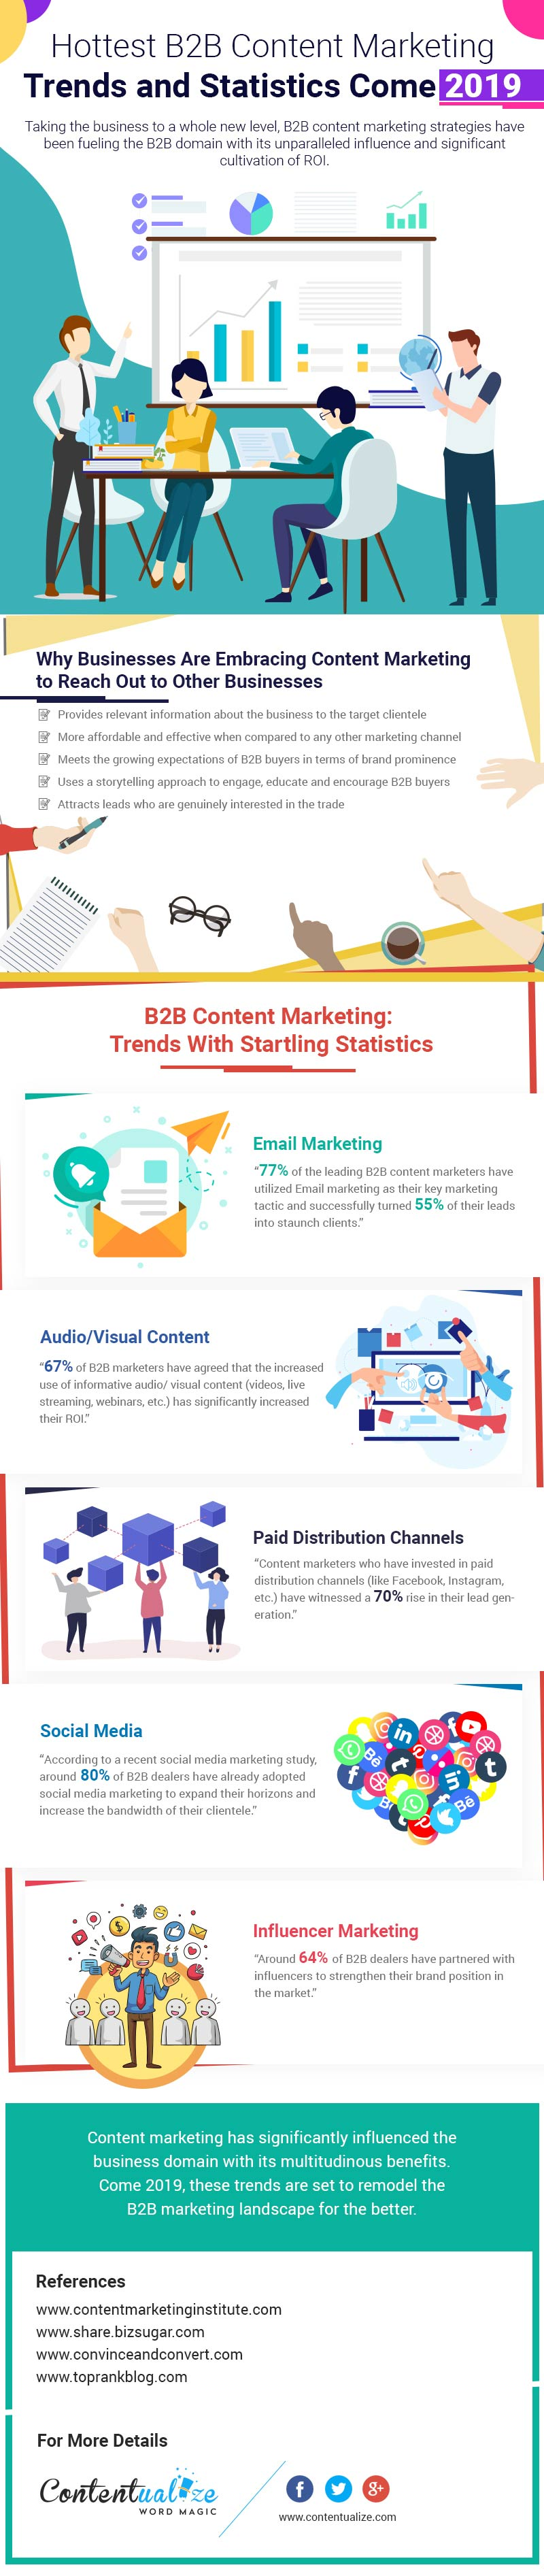 Hottest B2B Content Marketing Trends and Statistics in 2019 [Infographic] - PoorManBlogger.com